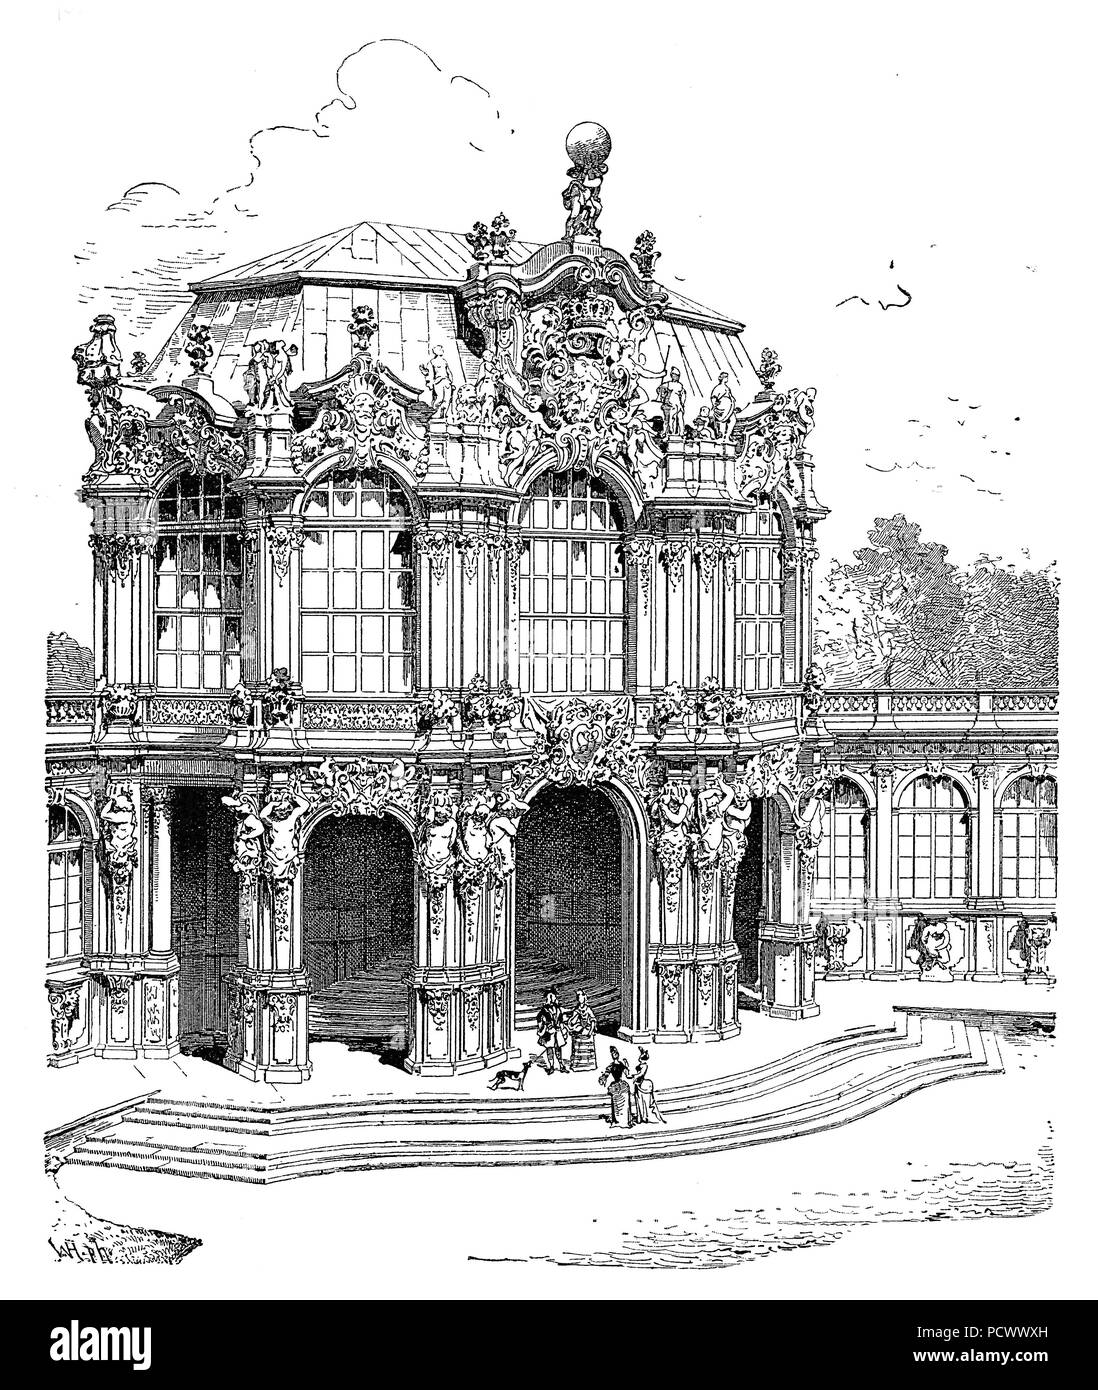 West pavilion of the Zwinger, a palace in the eastern German city of Dresden  built in Baroque style and designed by court architect Matthaeus Daniel Poeppelmann, vintage engraving Stock Photo